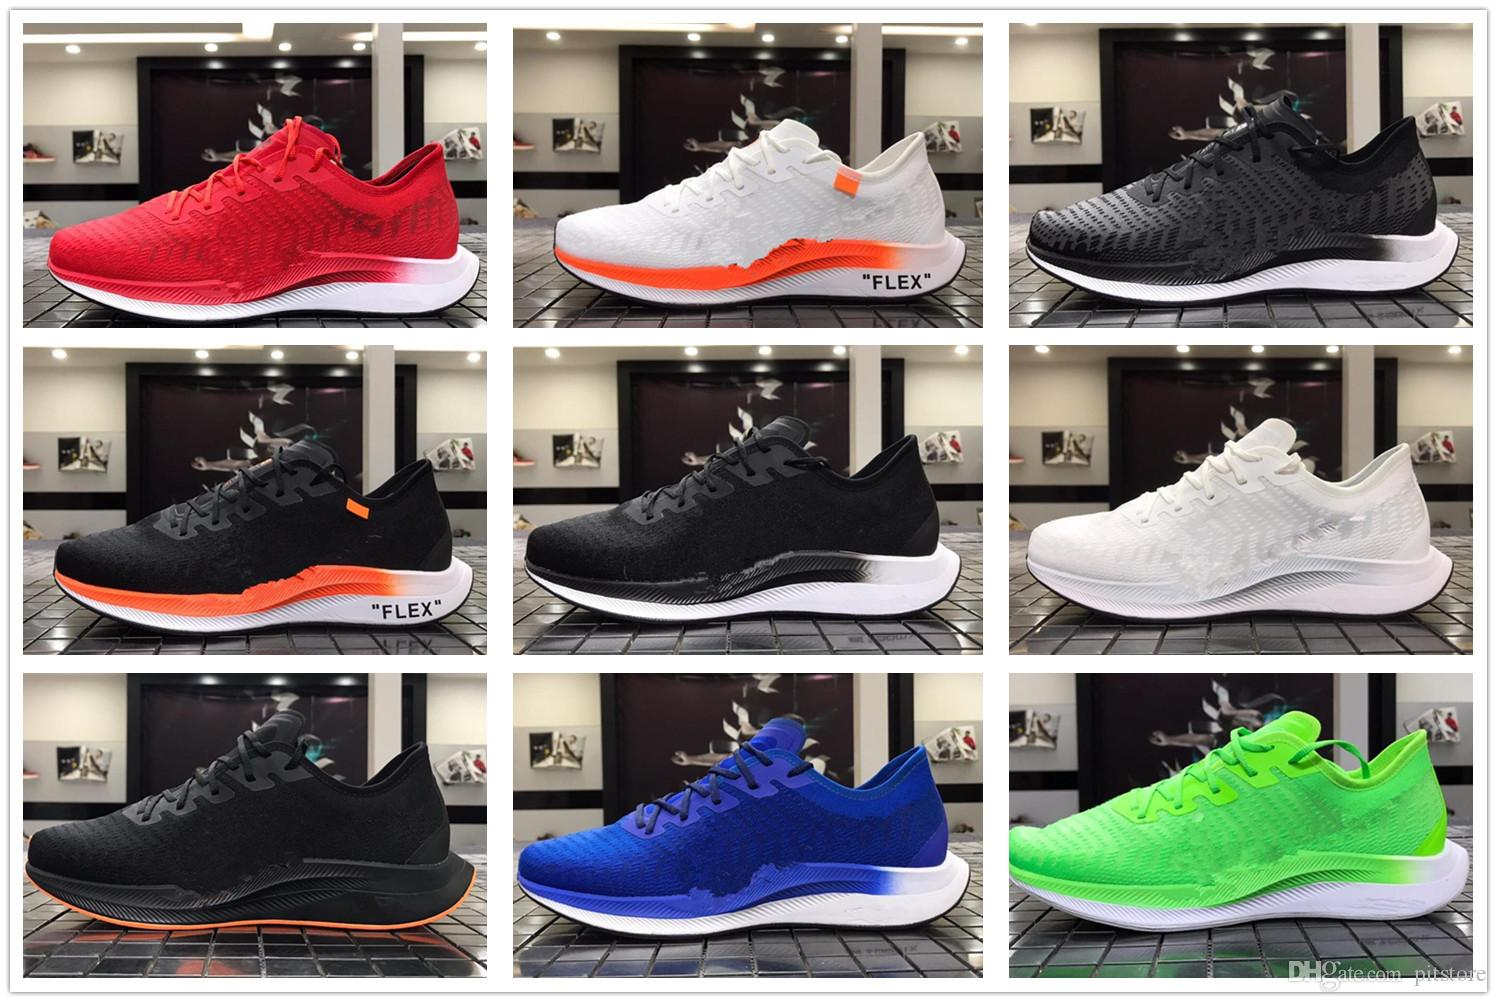 new concept 150d0 0b2e5 ZoomX Zoom Pegasus Turbo 2 Vaporfly NEXT Zoom Fly 3 React Zoom Pegasus 35  size us5.5-us11